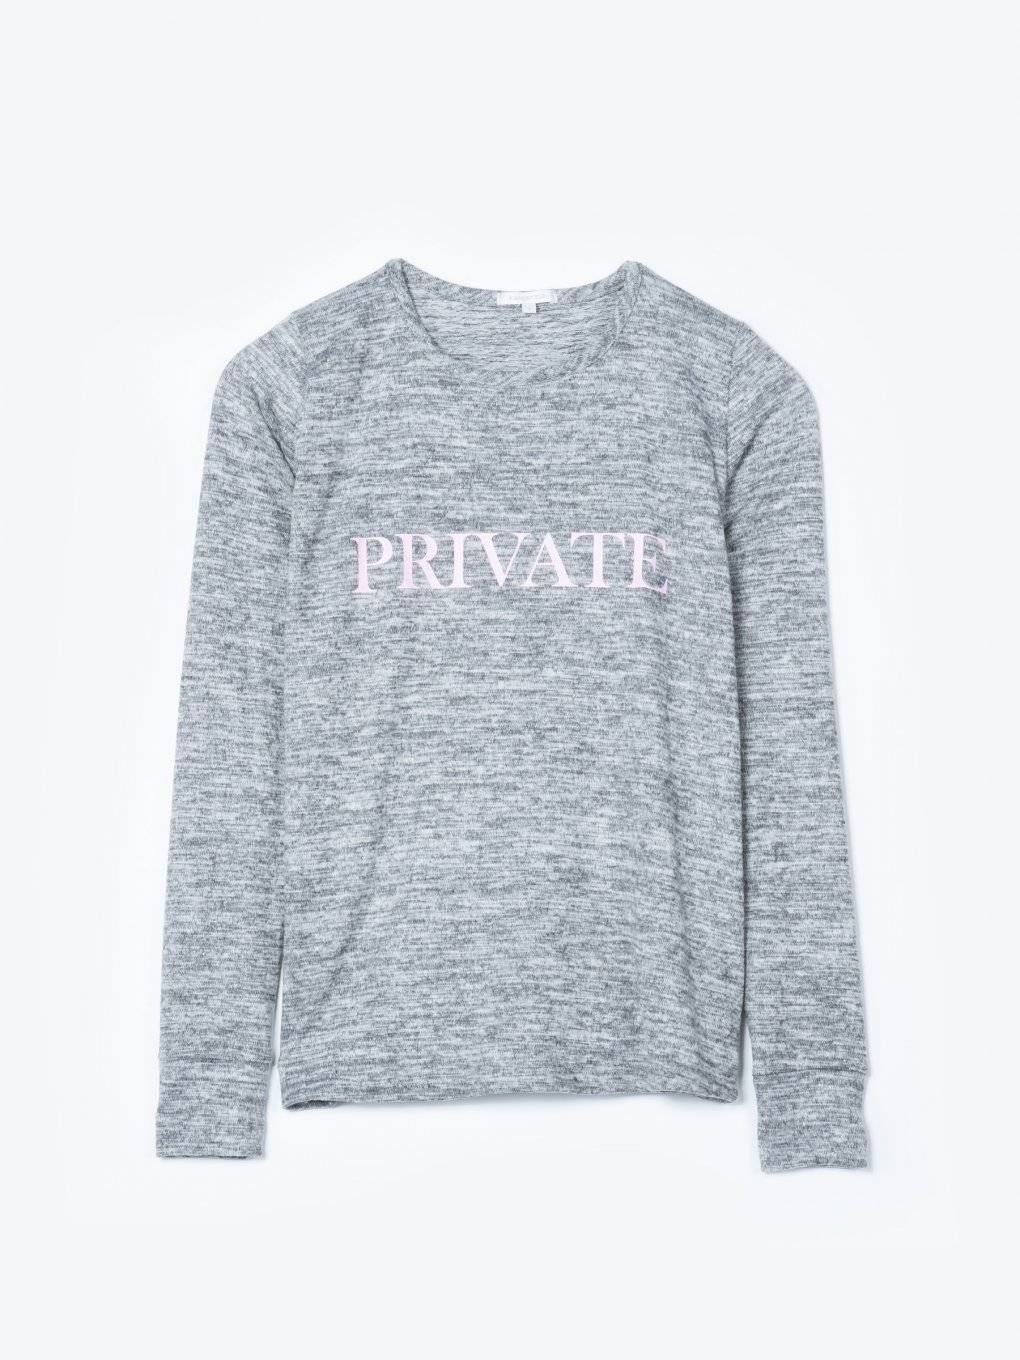 Marled sweatshirt with print